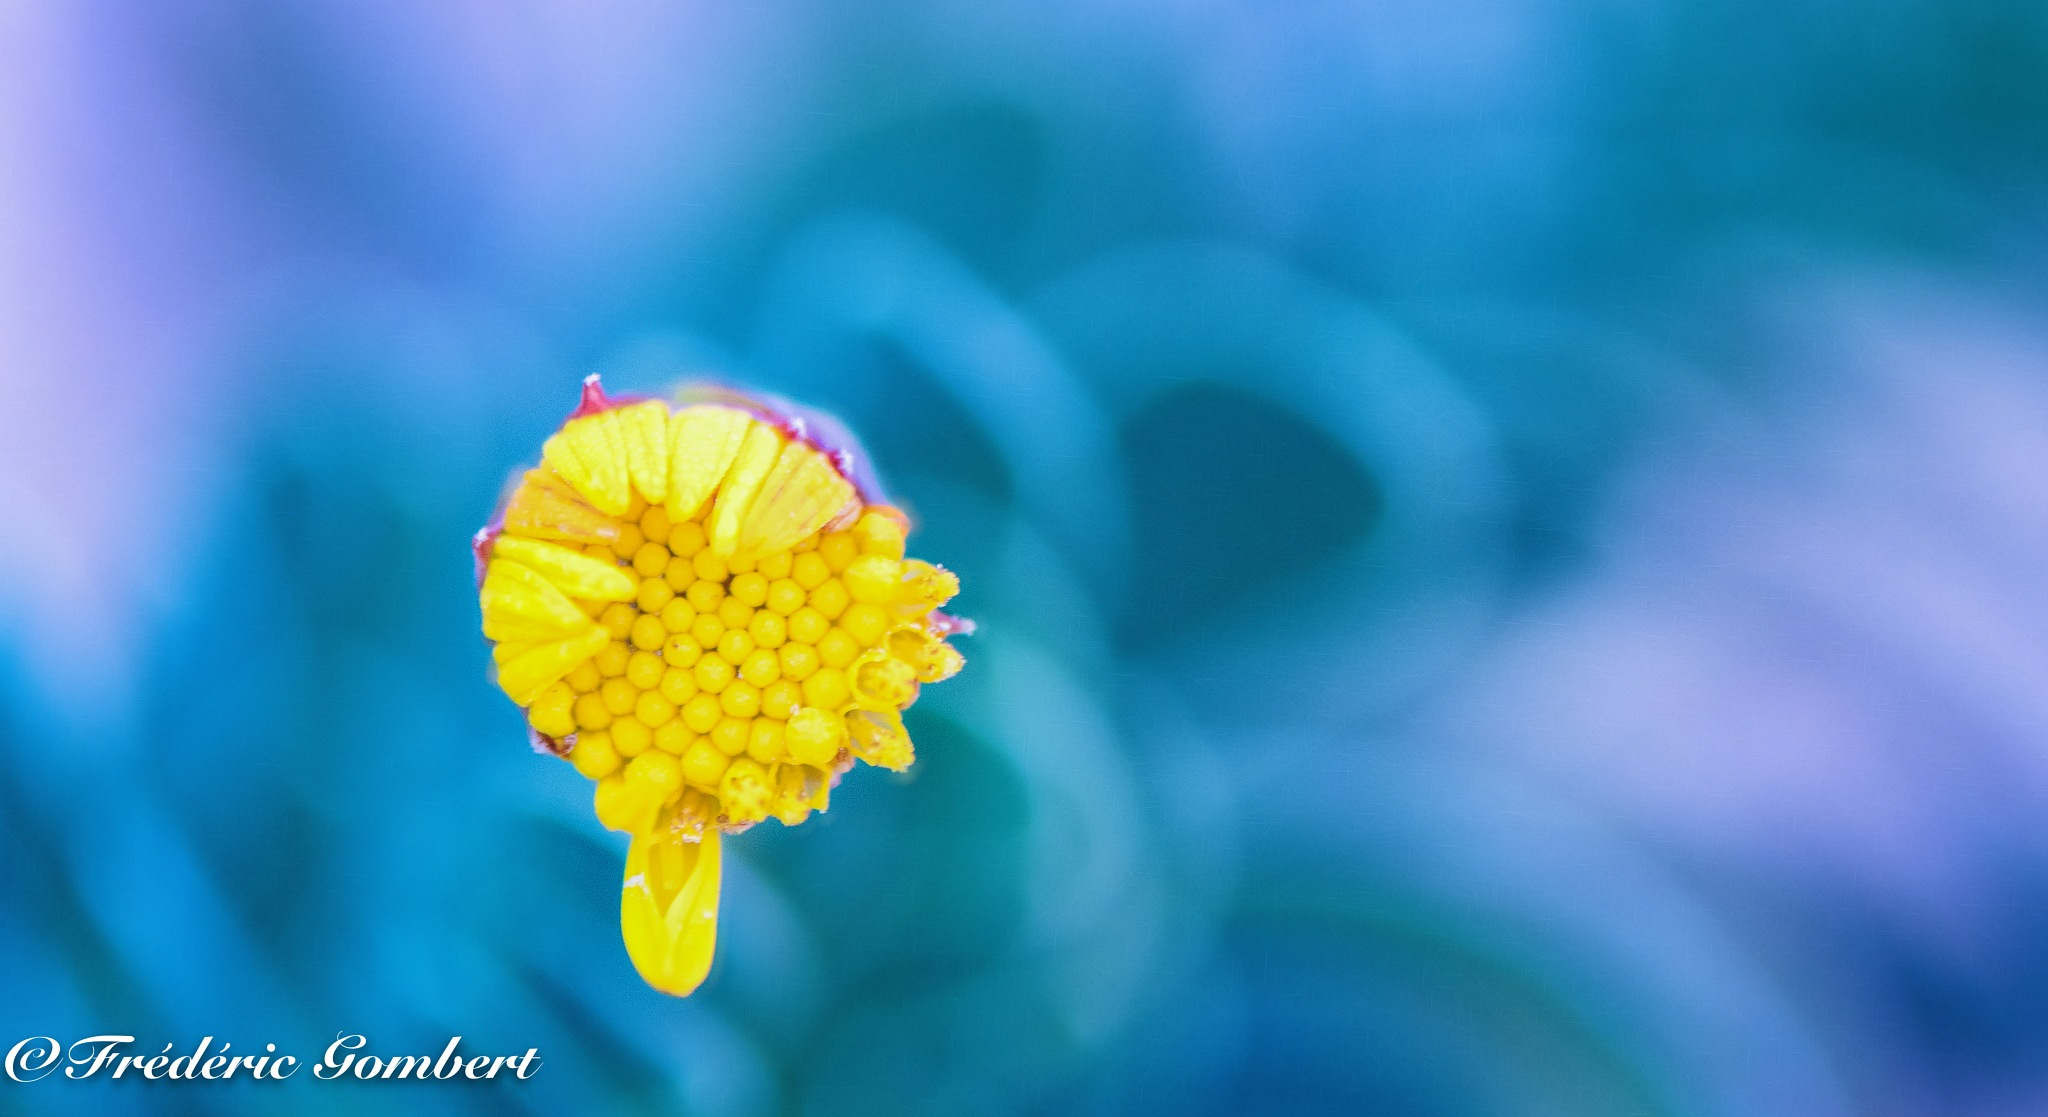 Shy in the garden by Frederic Gombert